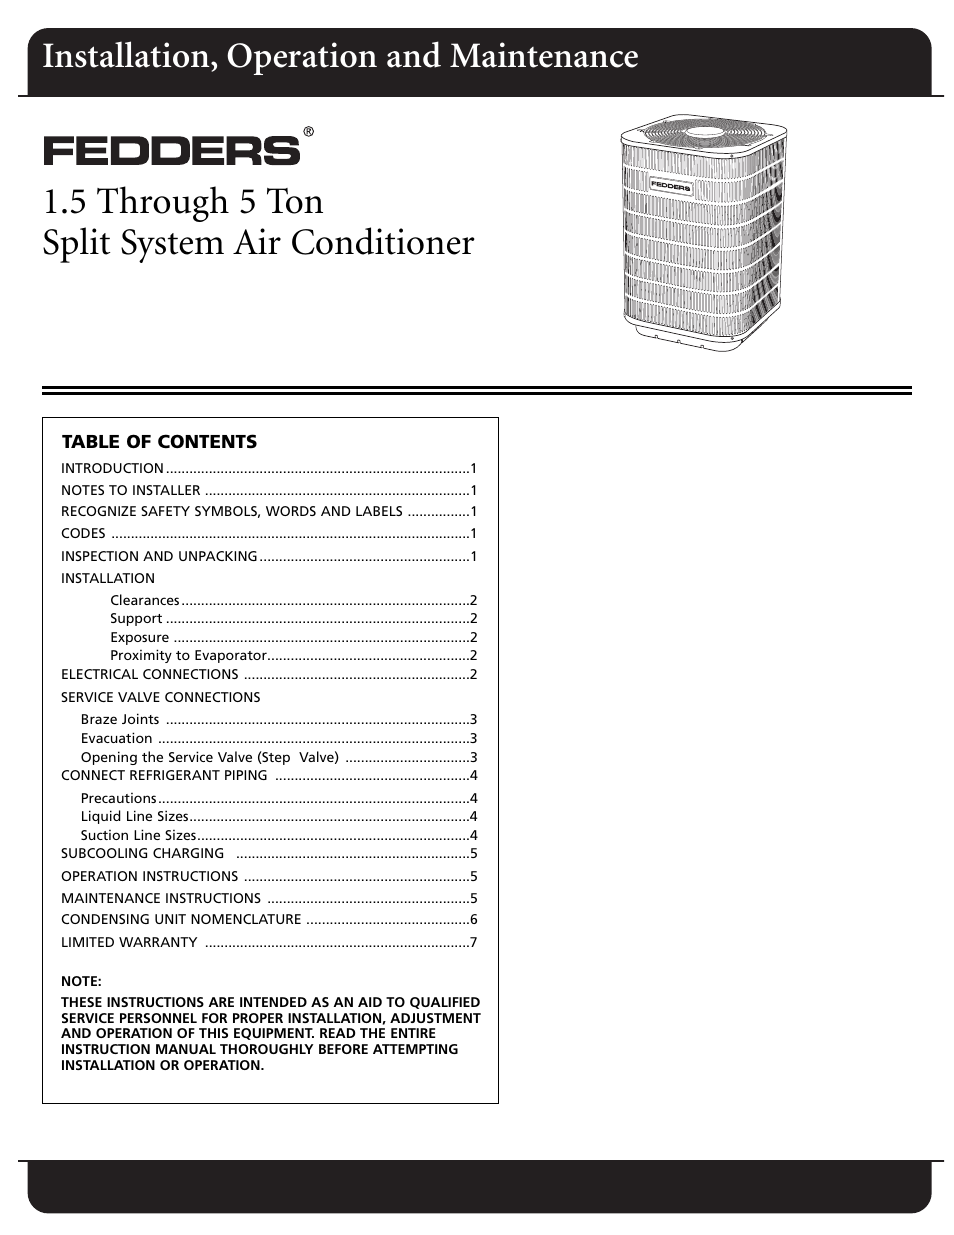 fedders split system air conditioner user manual 8 pages rh manualsdir com Honeywell Thermostat Installation Manual Garage Door Installation Manual